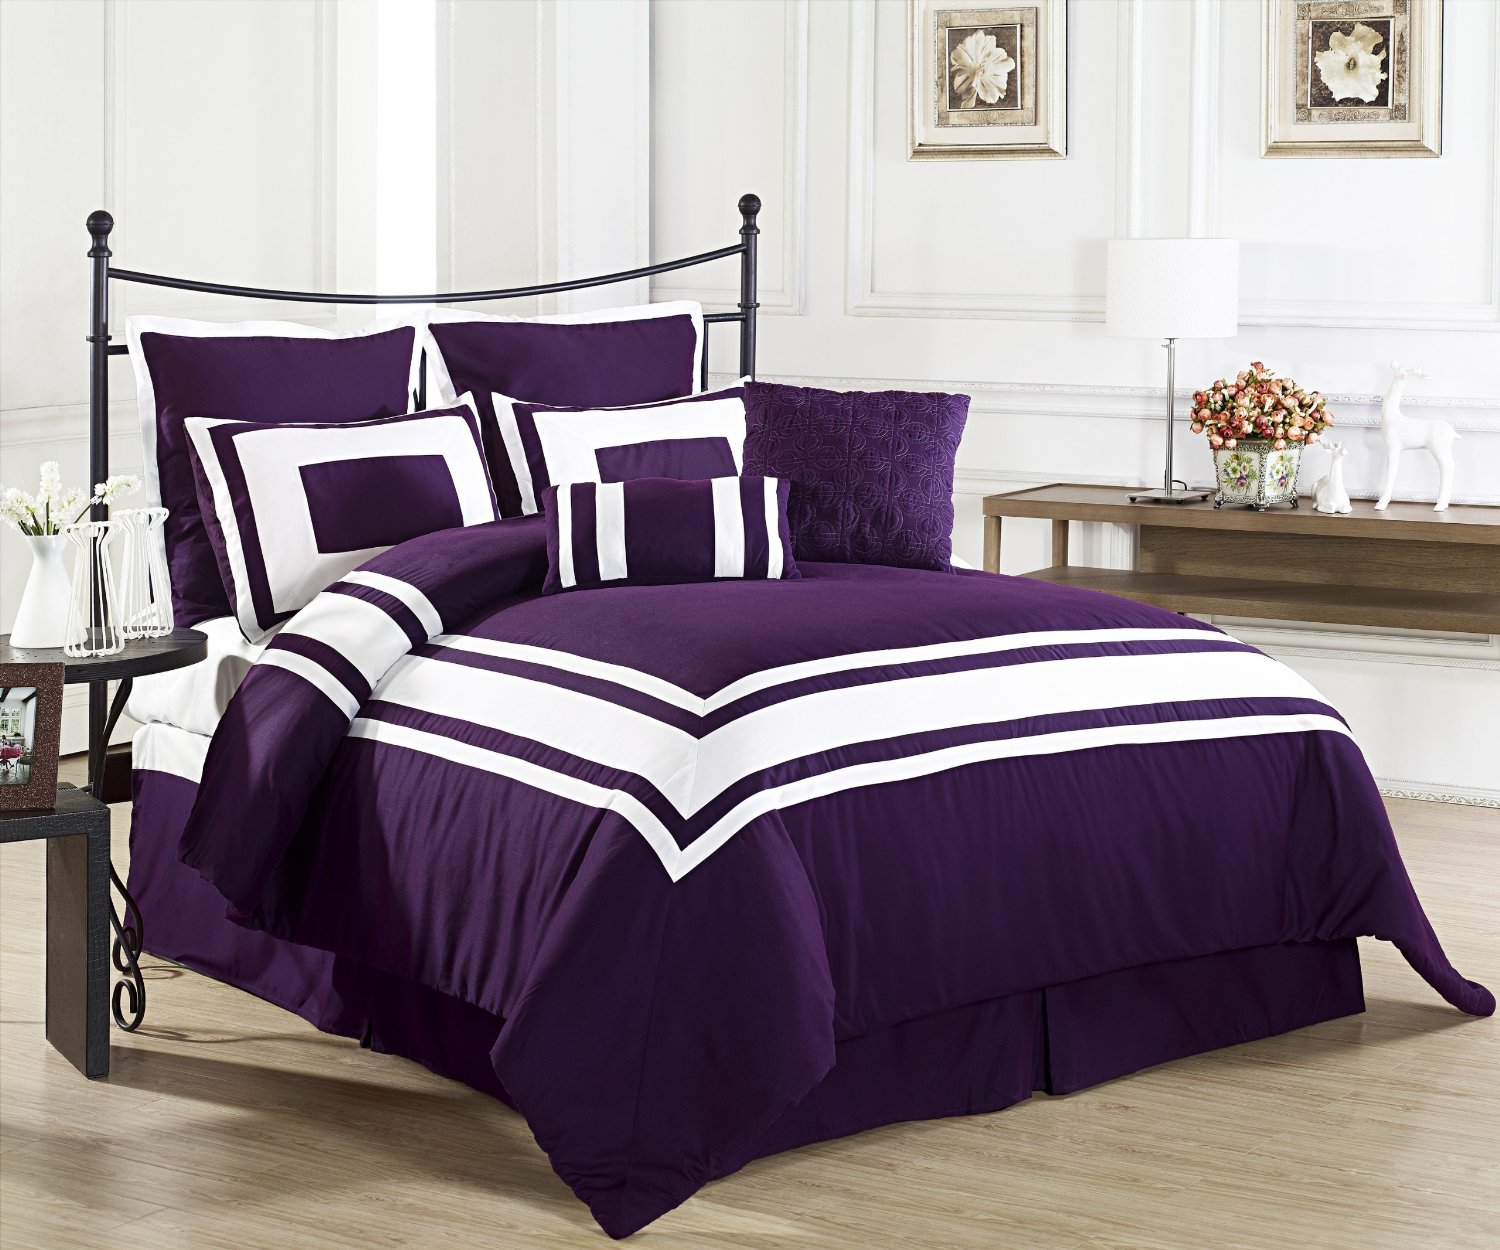 Purple Bedding Sets Perfect Tone For The Season Home